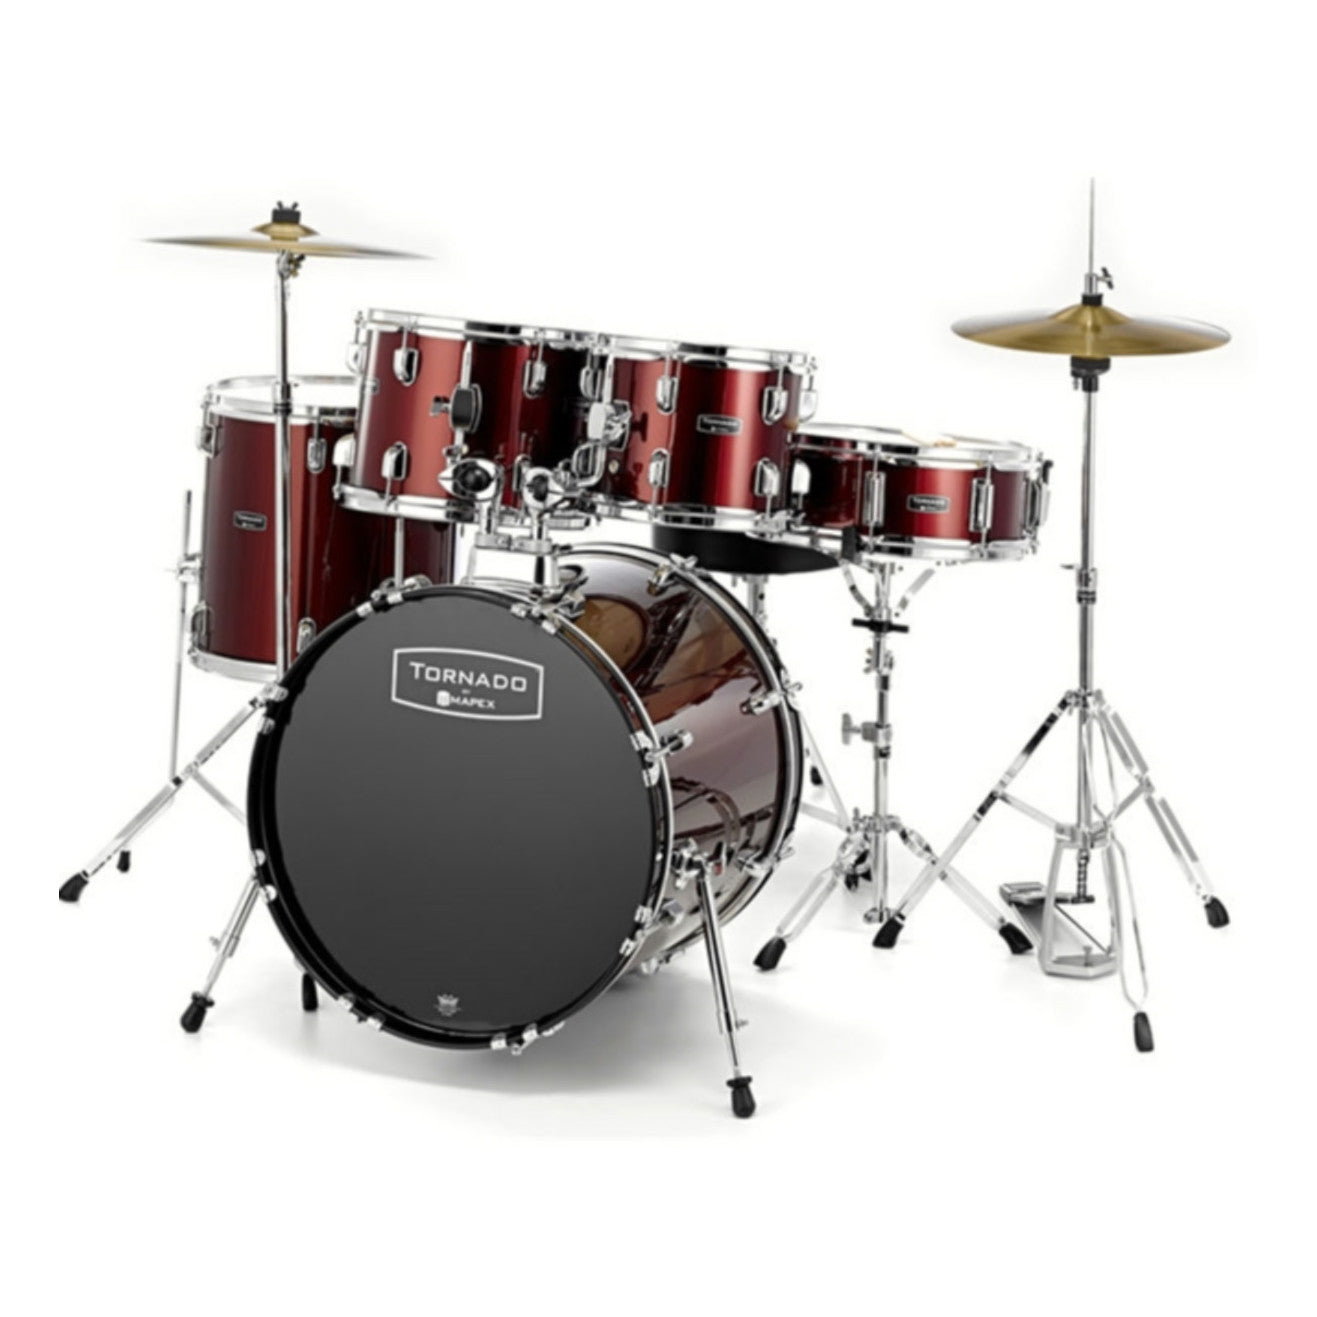 Mapex Tornado III 22 Inch Rock Fusion Drum Kit (Red)